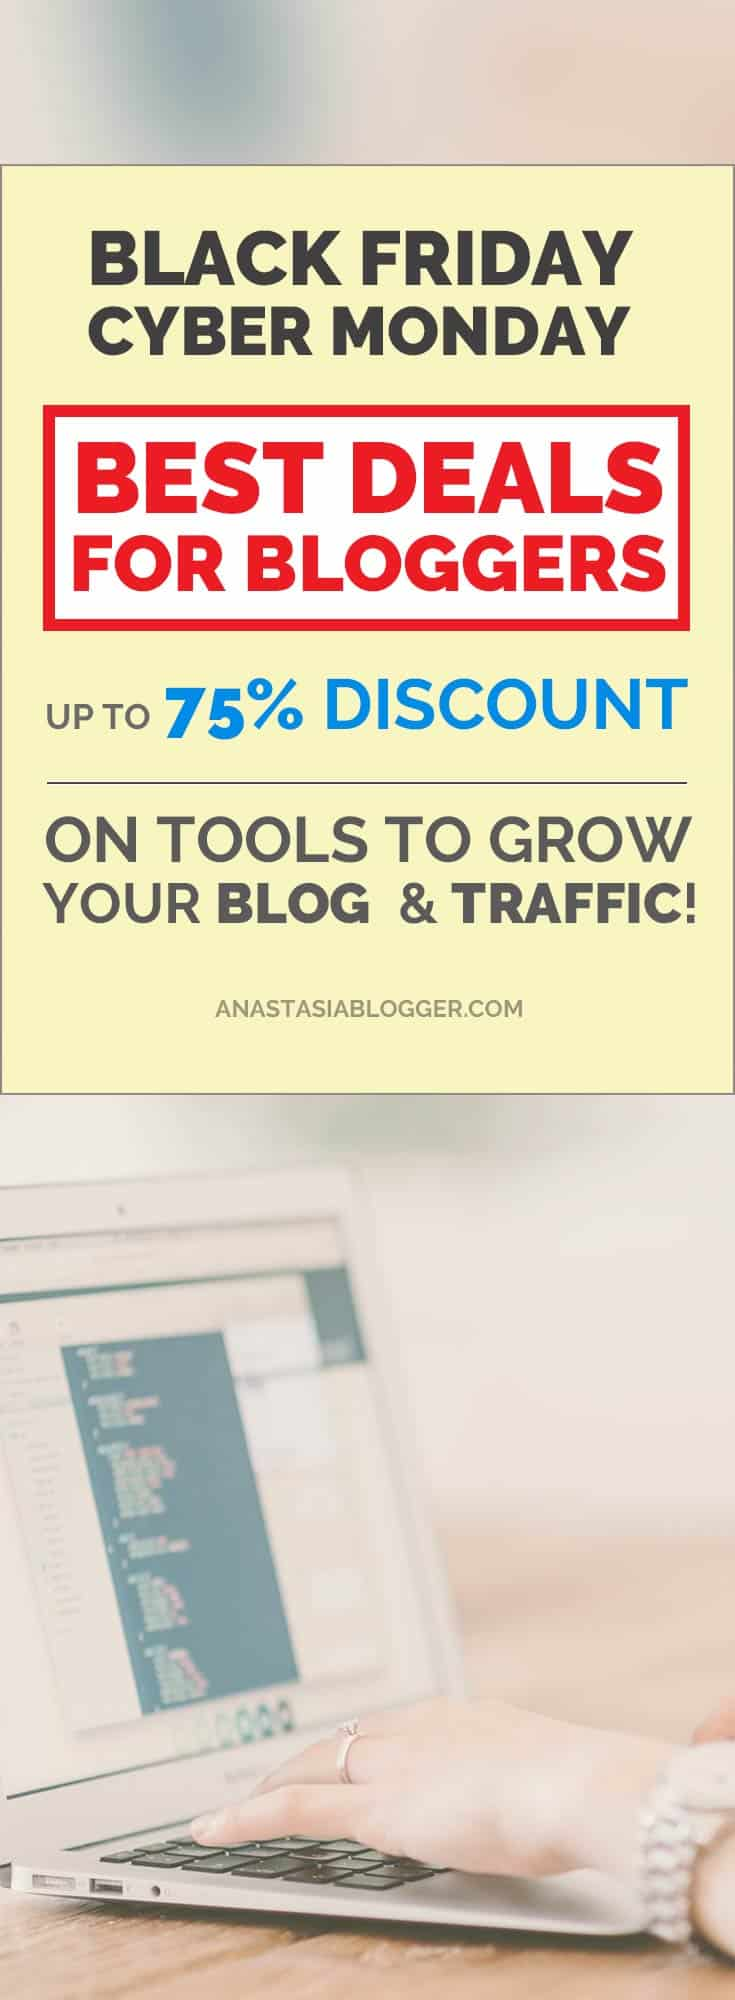 Best online marketing tools to grow your traffic, hosting, premium Wordpress Themes and plugins with discounts up to 75% for Black Friday & Cyber Monday! #Blackfriday2017 #BlackFriday #Blackfridaysale #Cybermonday2017 #CyberMonday